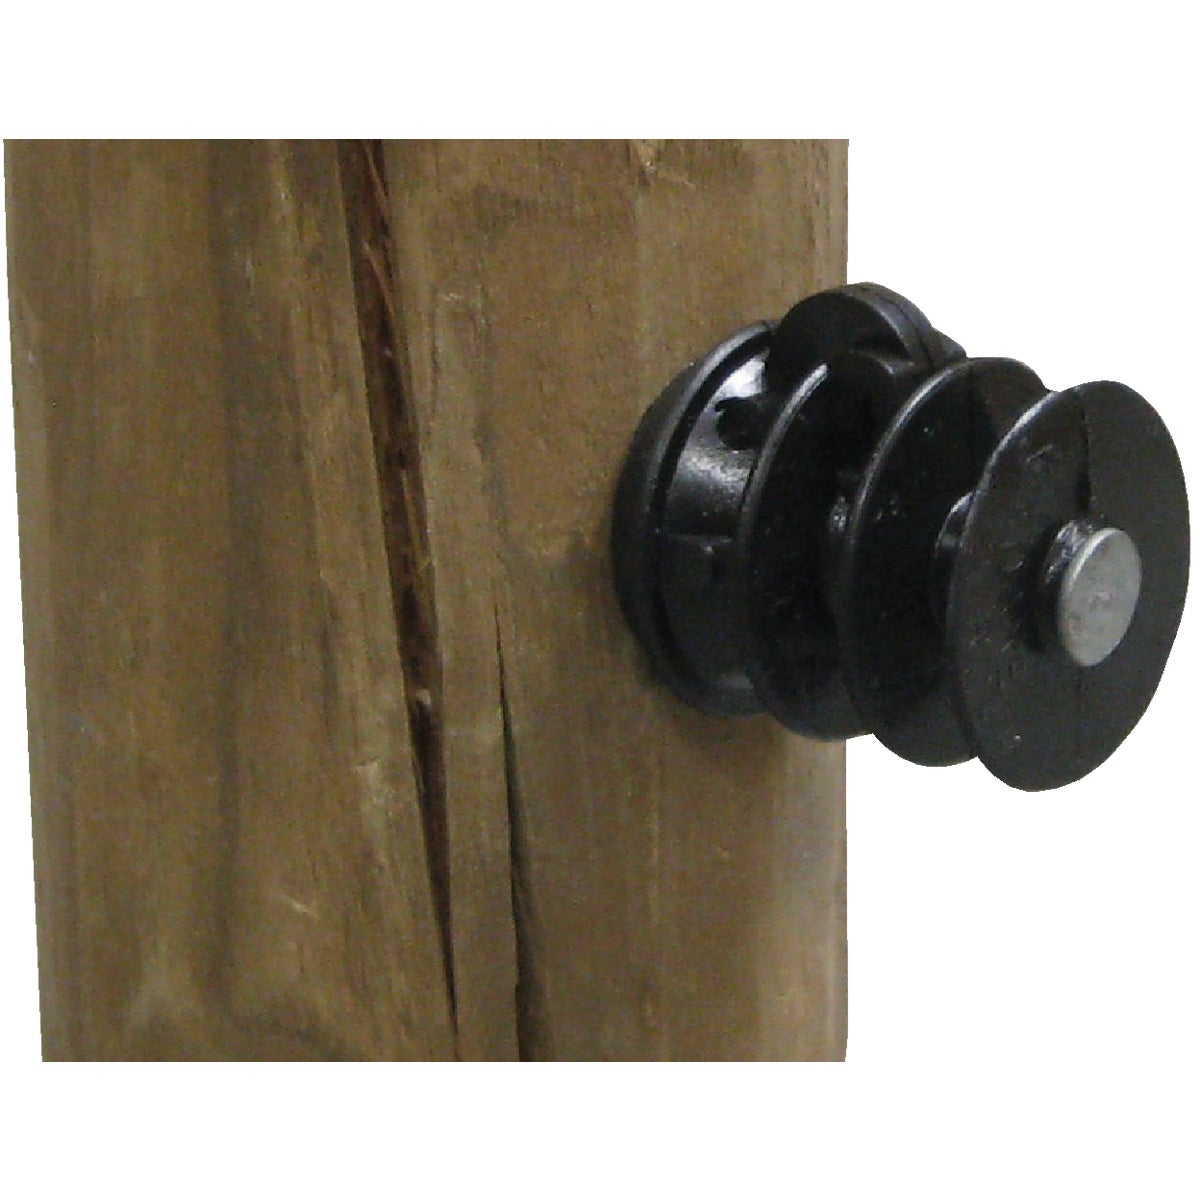 ELF WOOD POST INSULATOR - ELF-WP-25 by Dare Products Inc